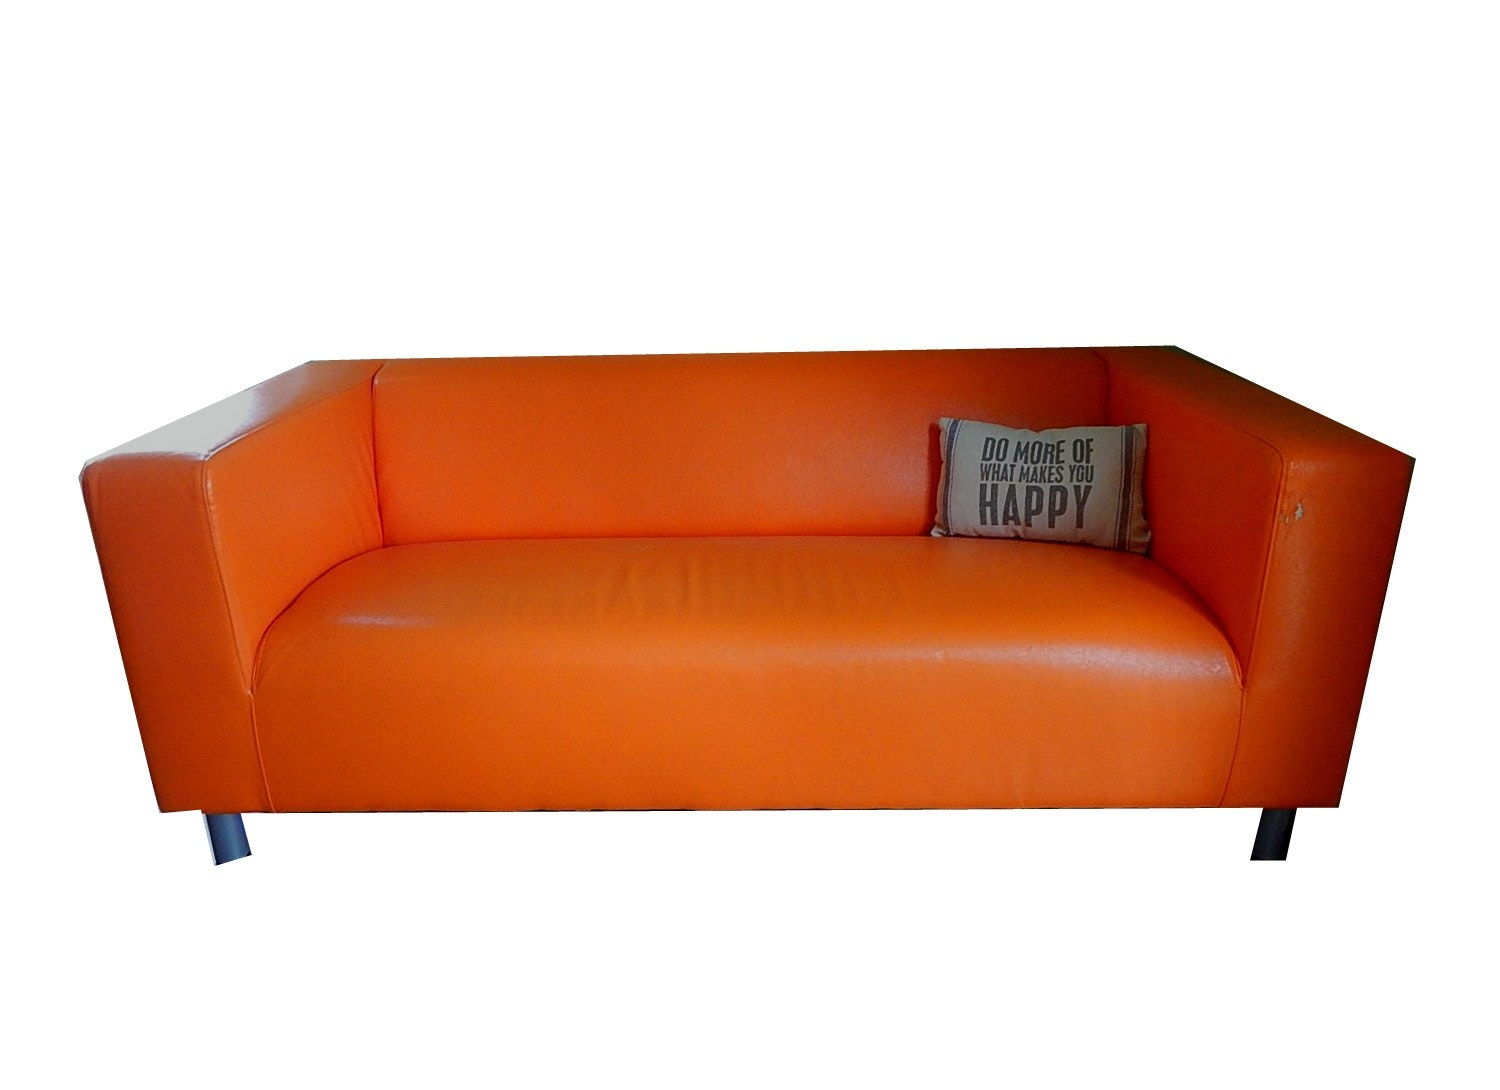 Beau IKEA Klippan Orange Sofa With Pillow ...